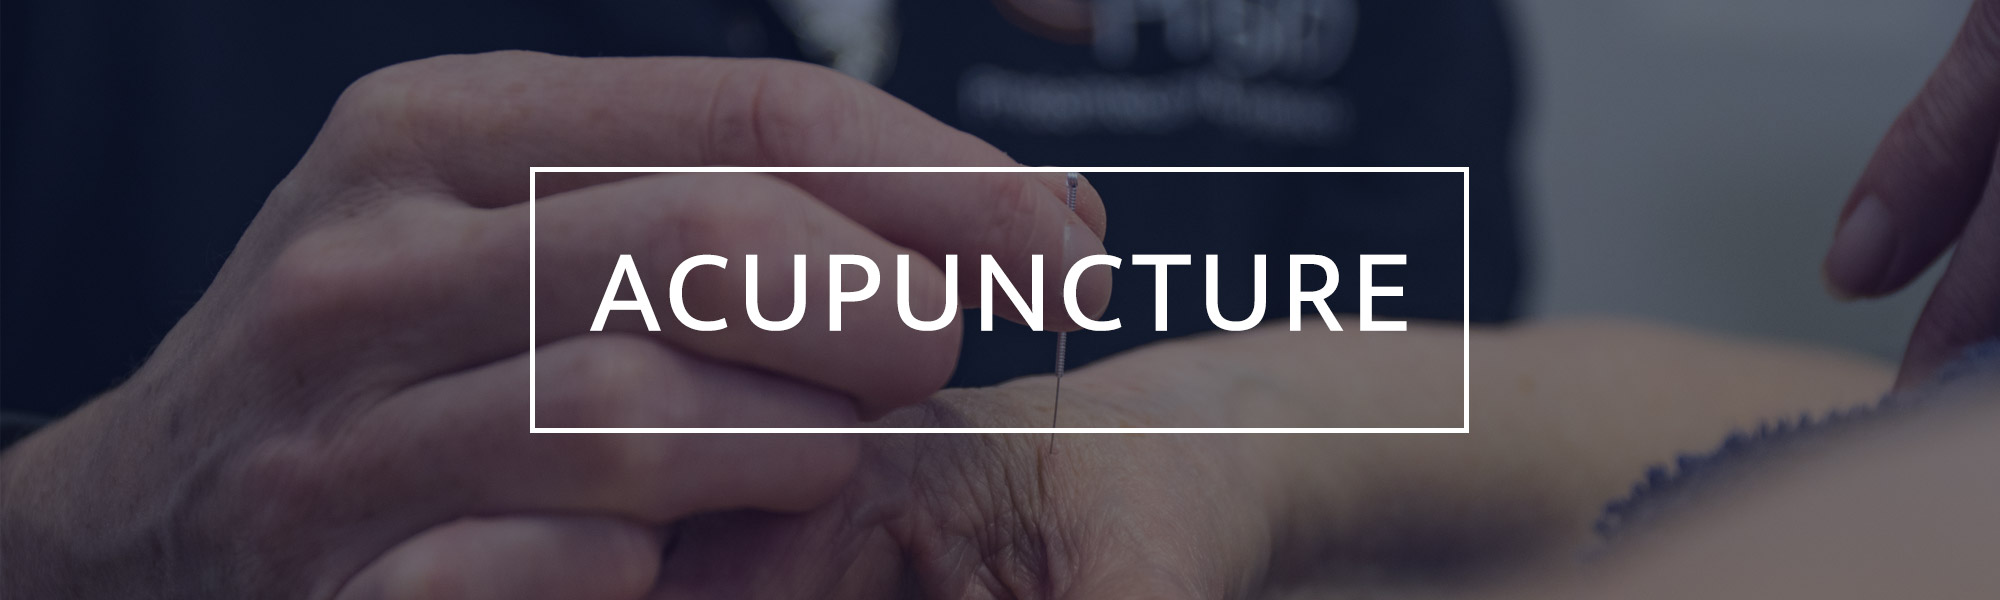 Acupuncture Header 2